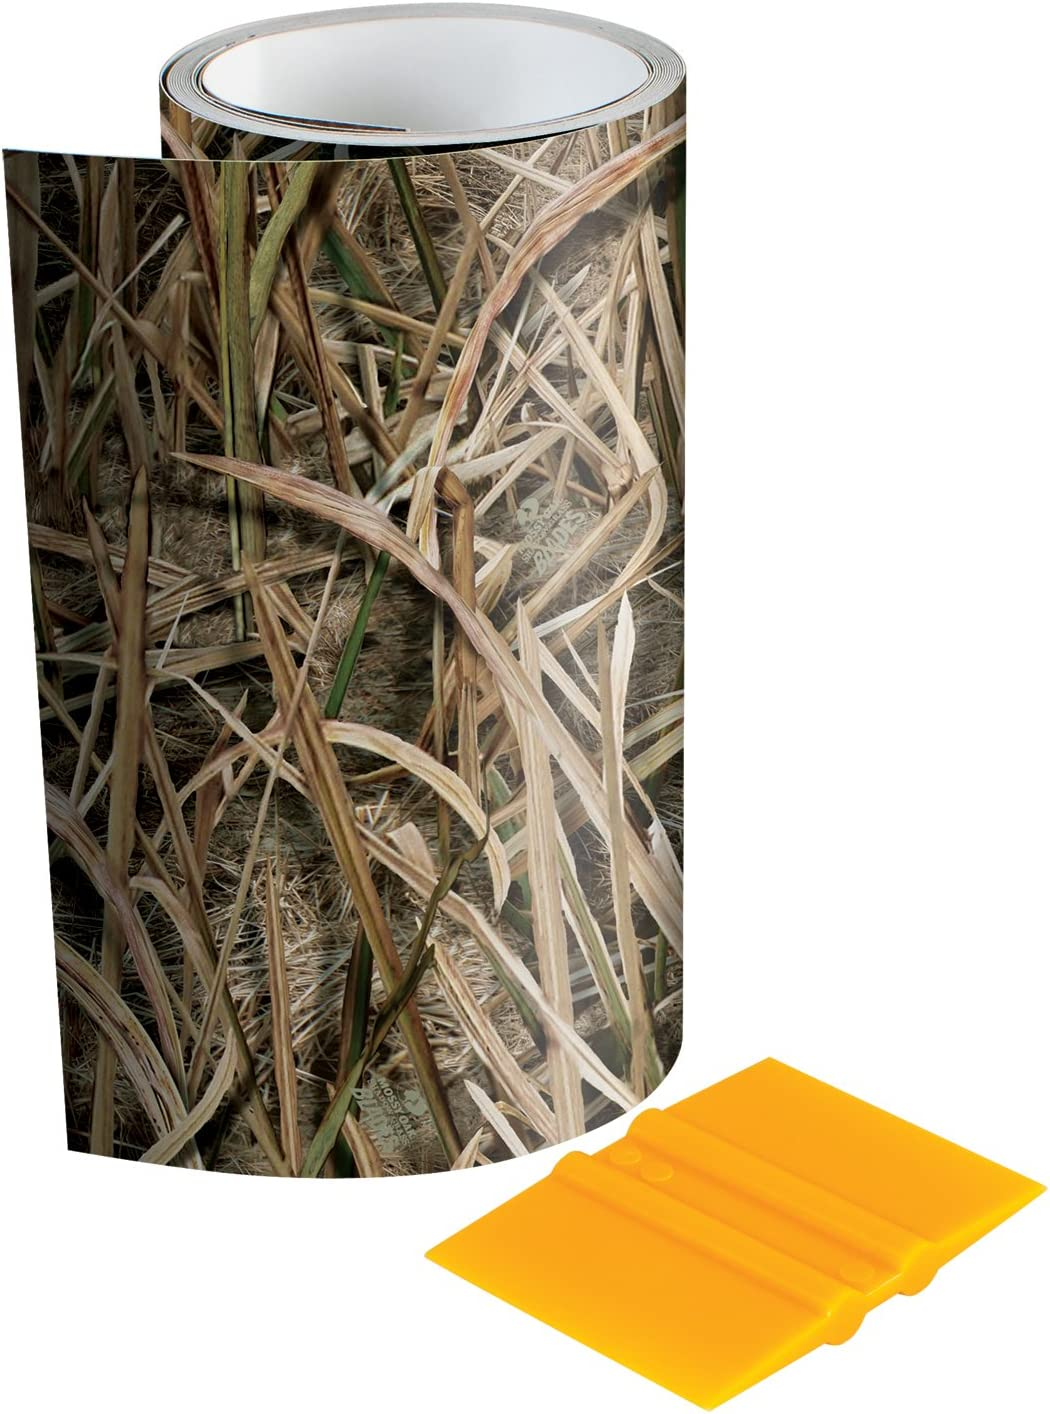 "Mossy Oak Graphics Shadowgrass Blades 14003-7-SGB 6"" X7' Camo Tape Cast Vinyl"